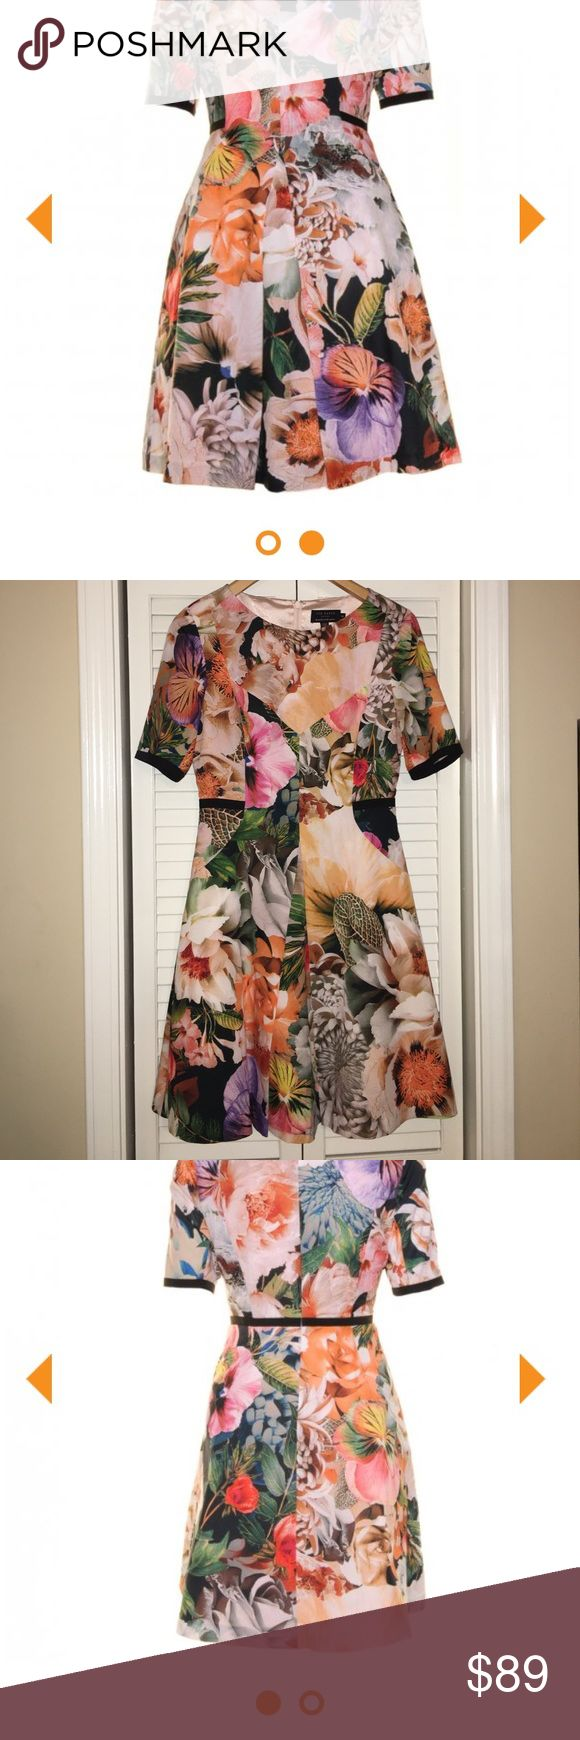 """Ted Baker floral dress Ted Baker London floral dress with black accents. I am famous for buying dresses with intentions of wearing them aaaaall the time to justify buying them in the first place.  I am also more famous for wearing them one time. Enjoy. It's a size 2. I am 5'10"""" and 135 lbs and it fits me fine. Ted Baker London Dresses"""